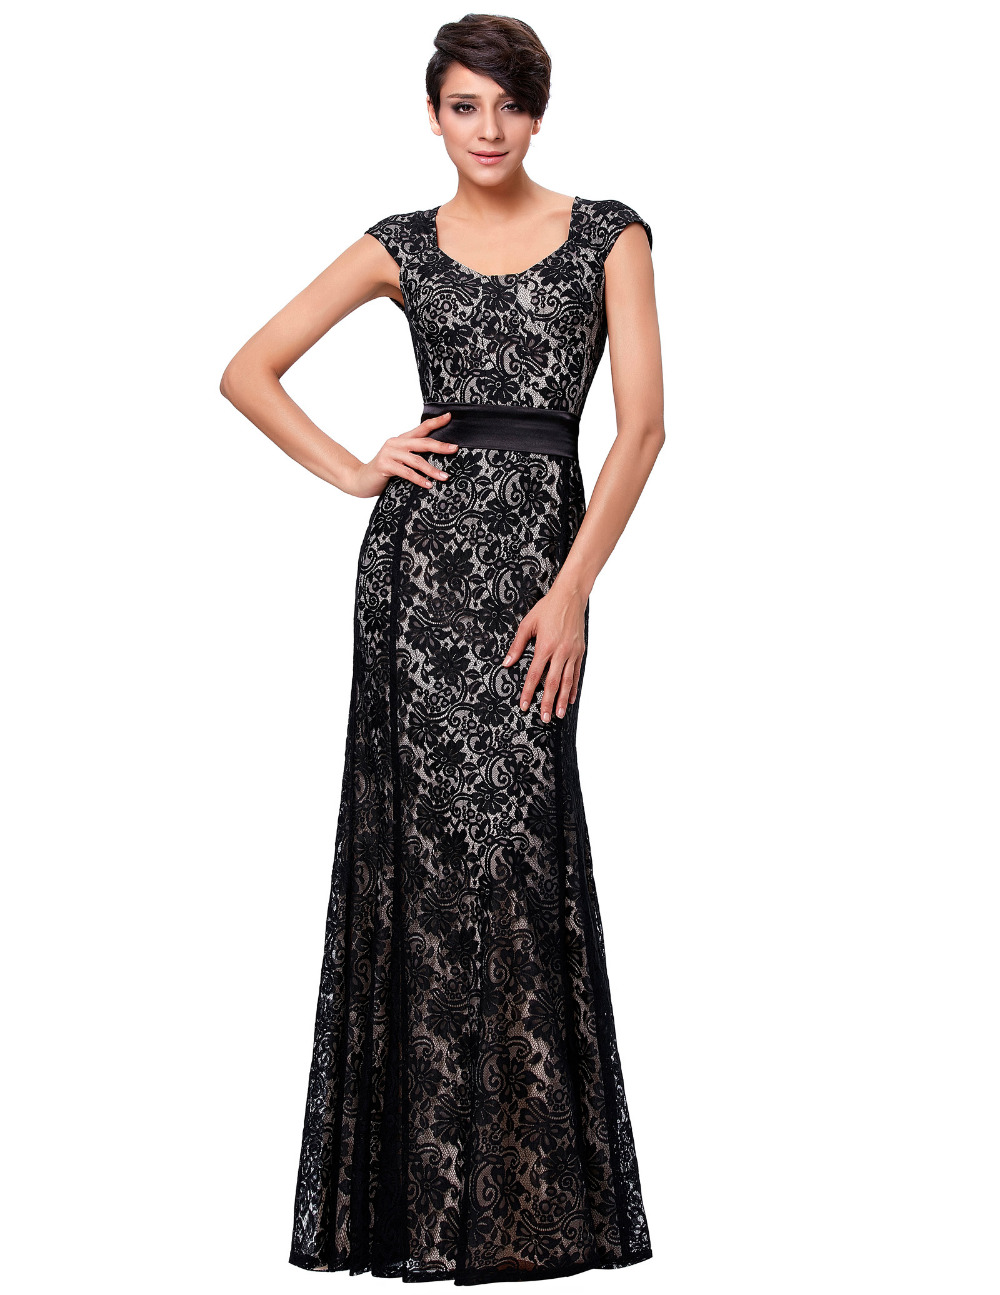 Black Feather Gown Promotion- Promotional